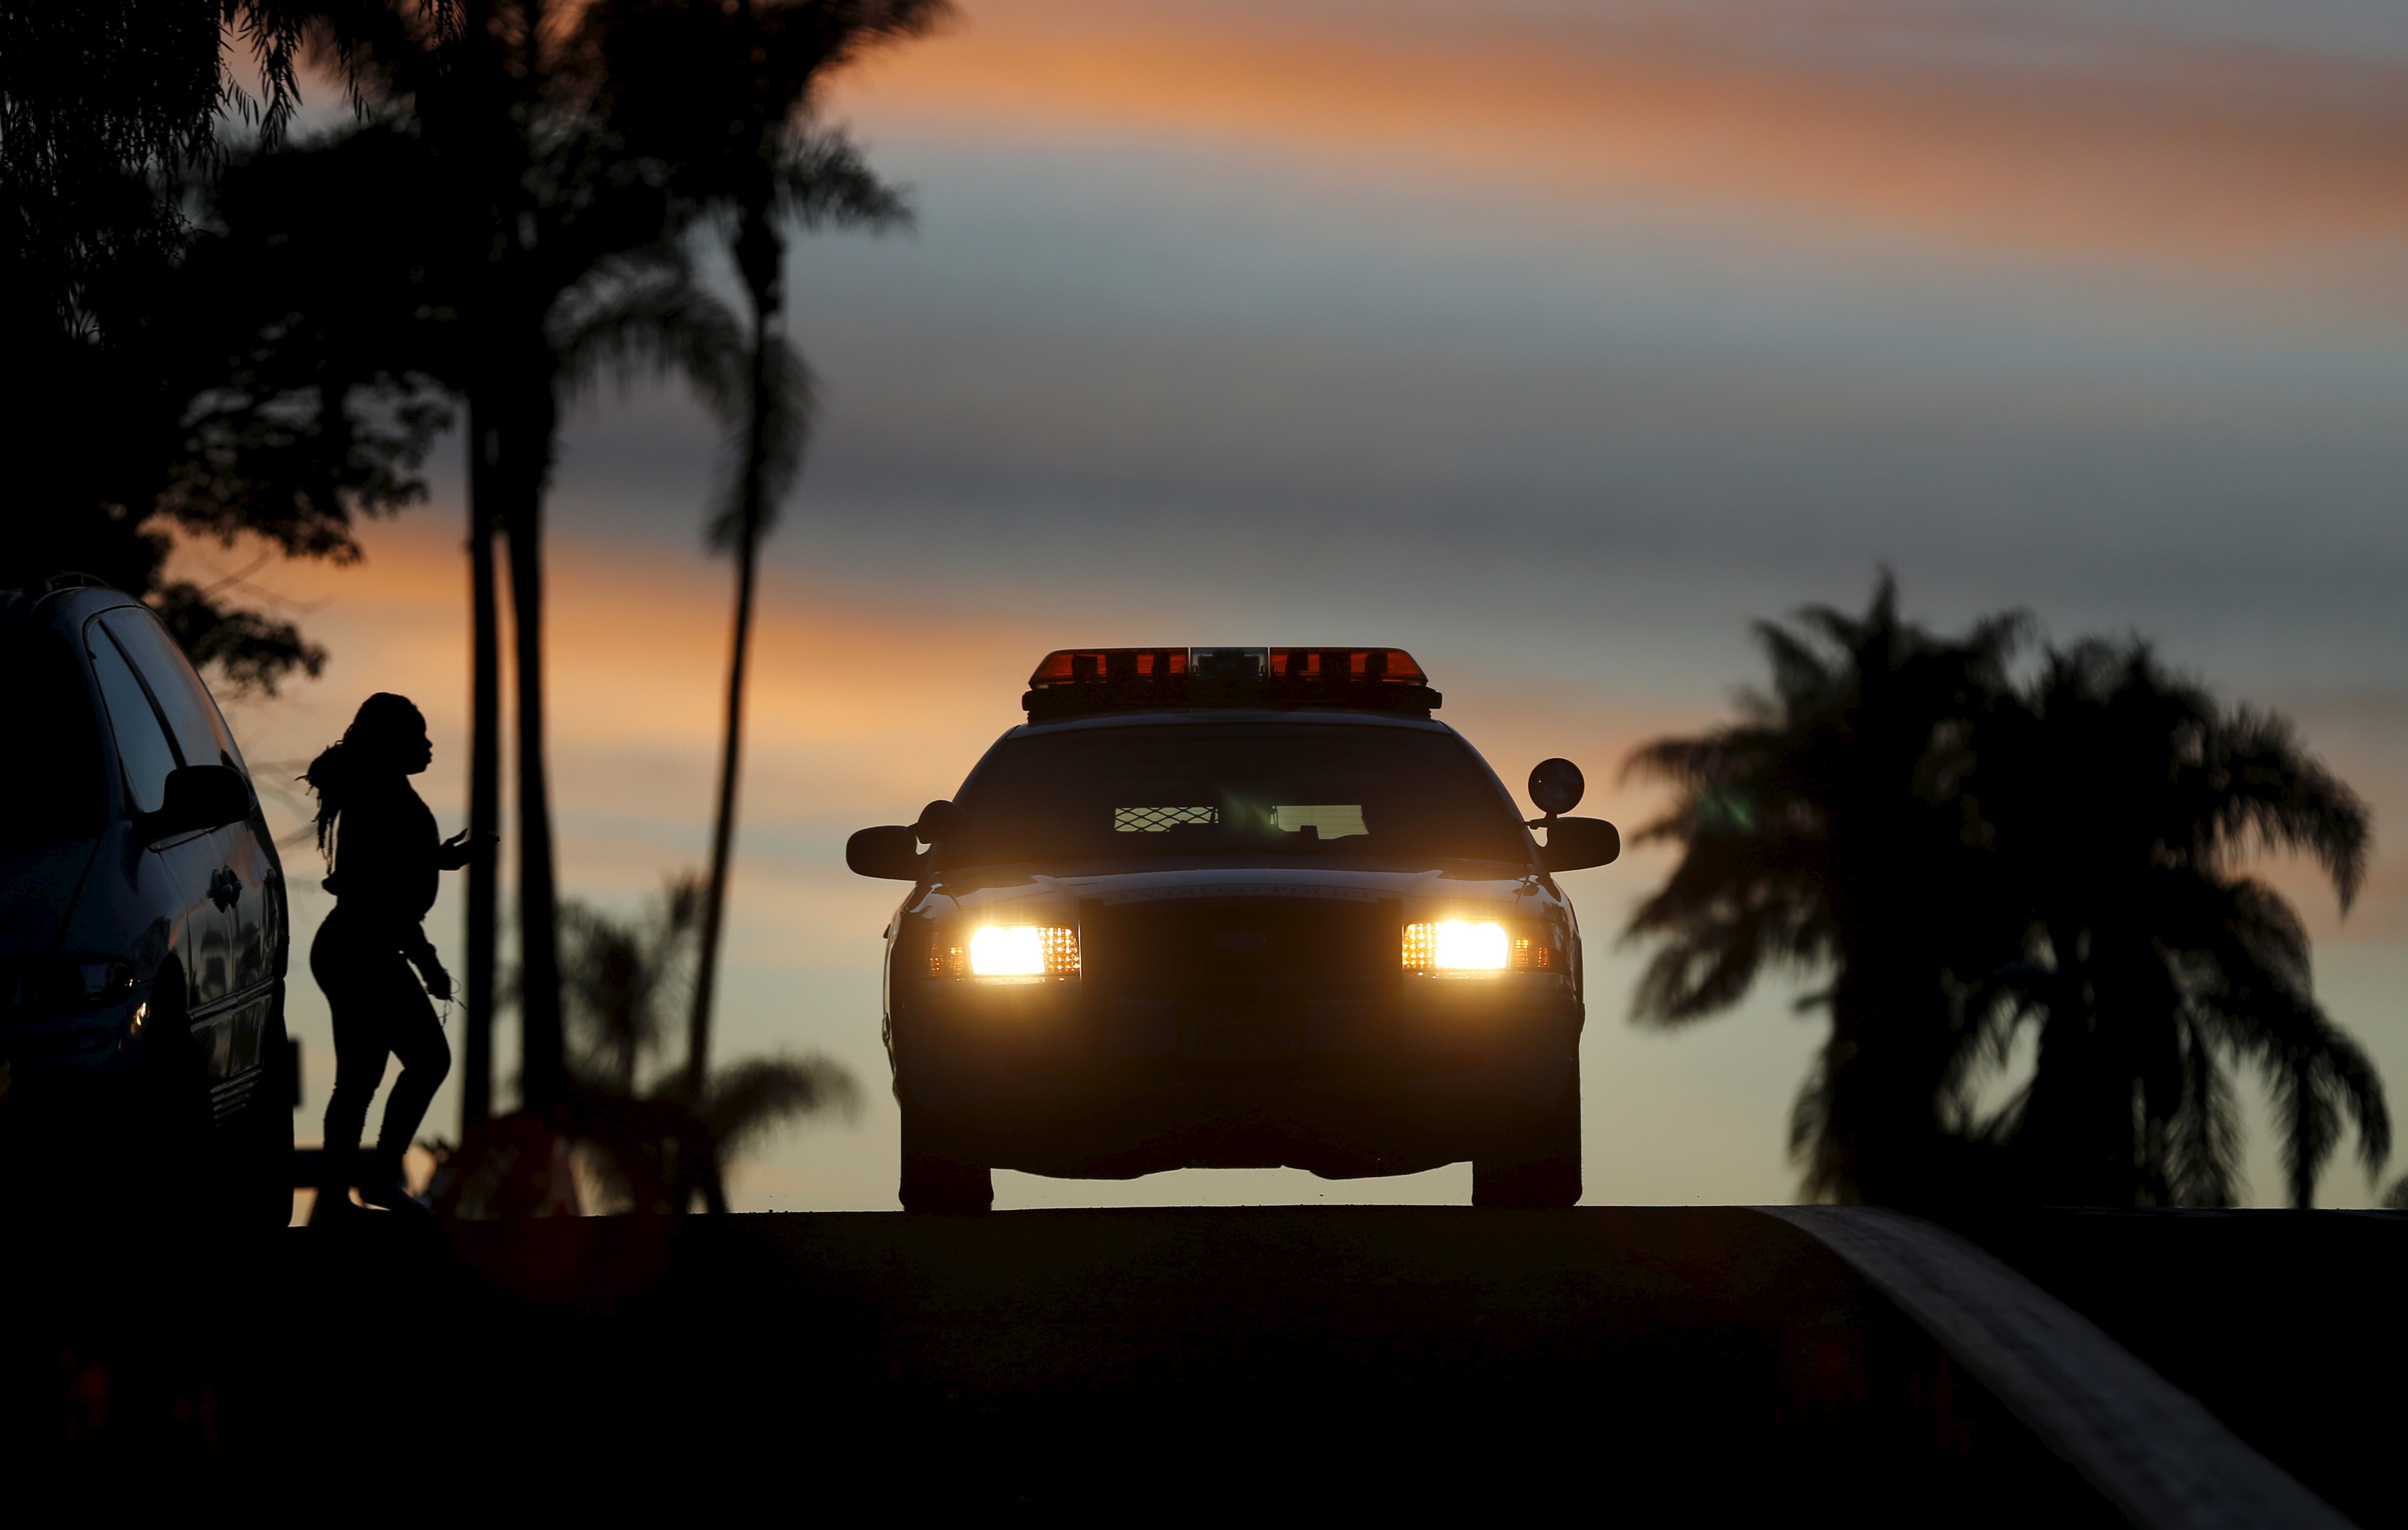 RSVP member Steve Rubin drives while on patrol with partner Henry Miller, March 10, 2015. Photo by Mike Blake/Reuters